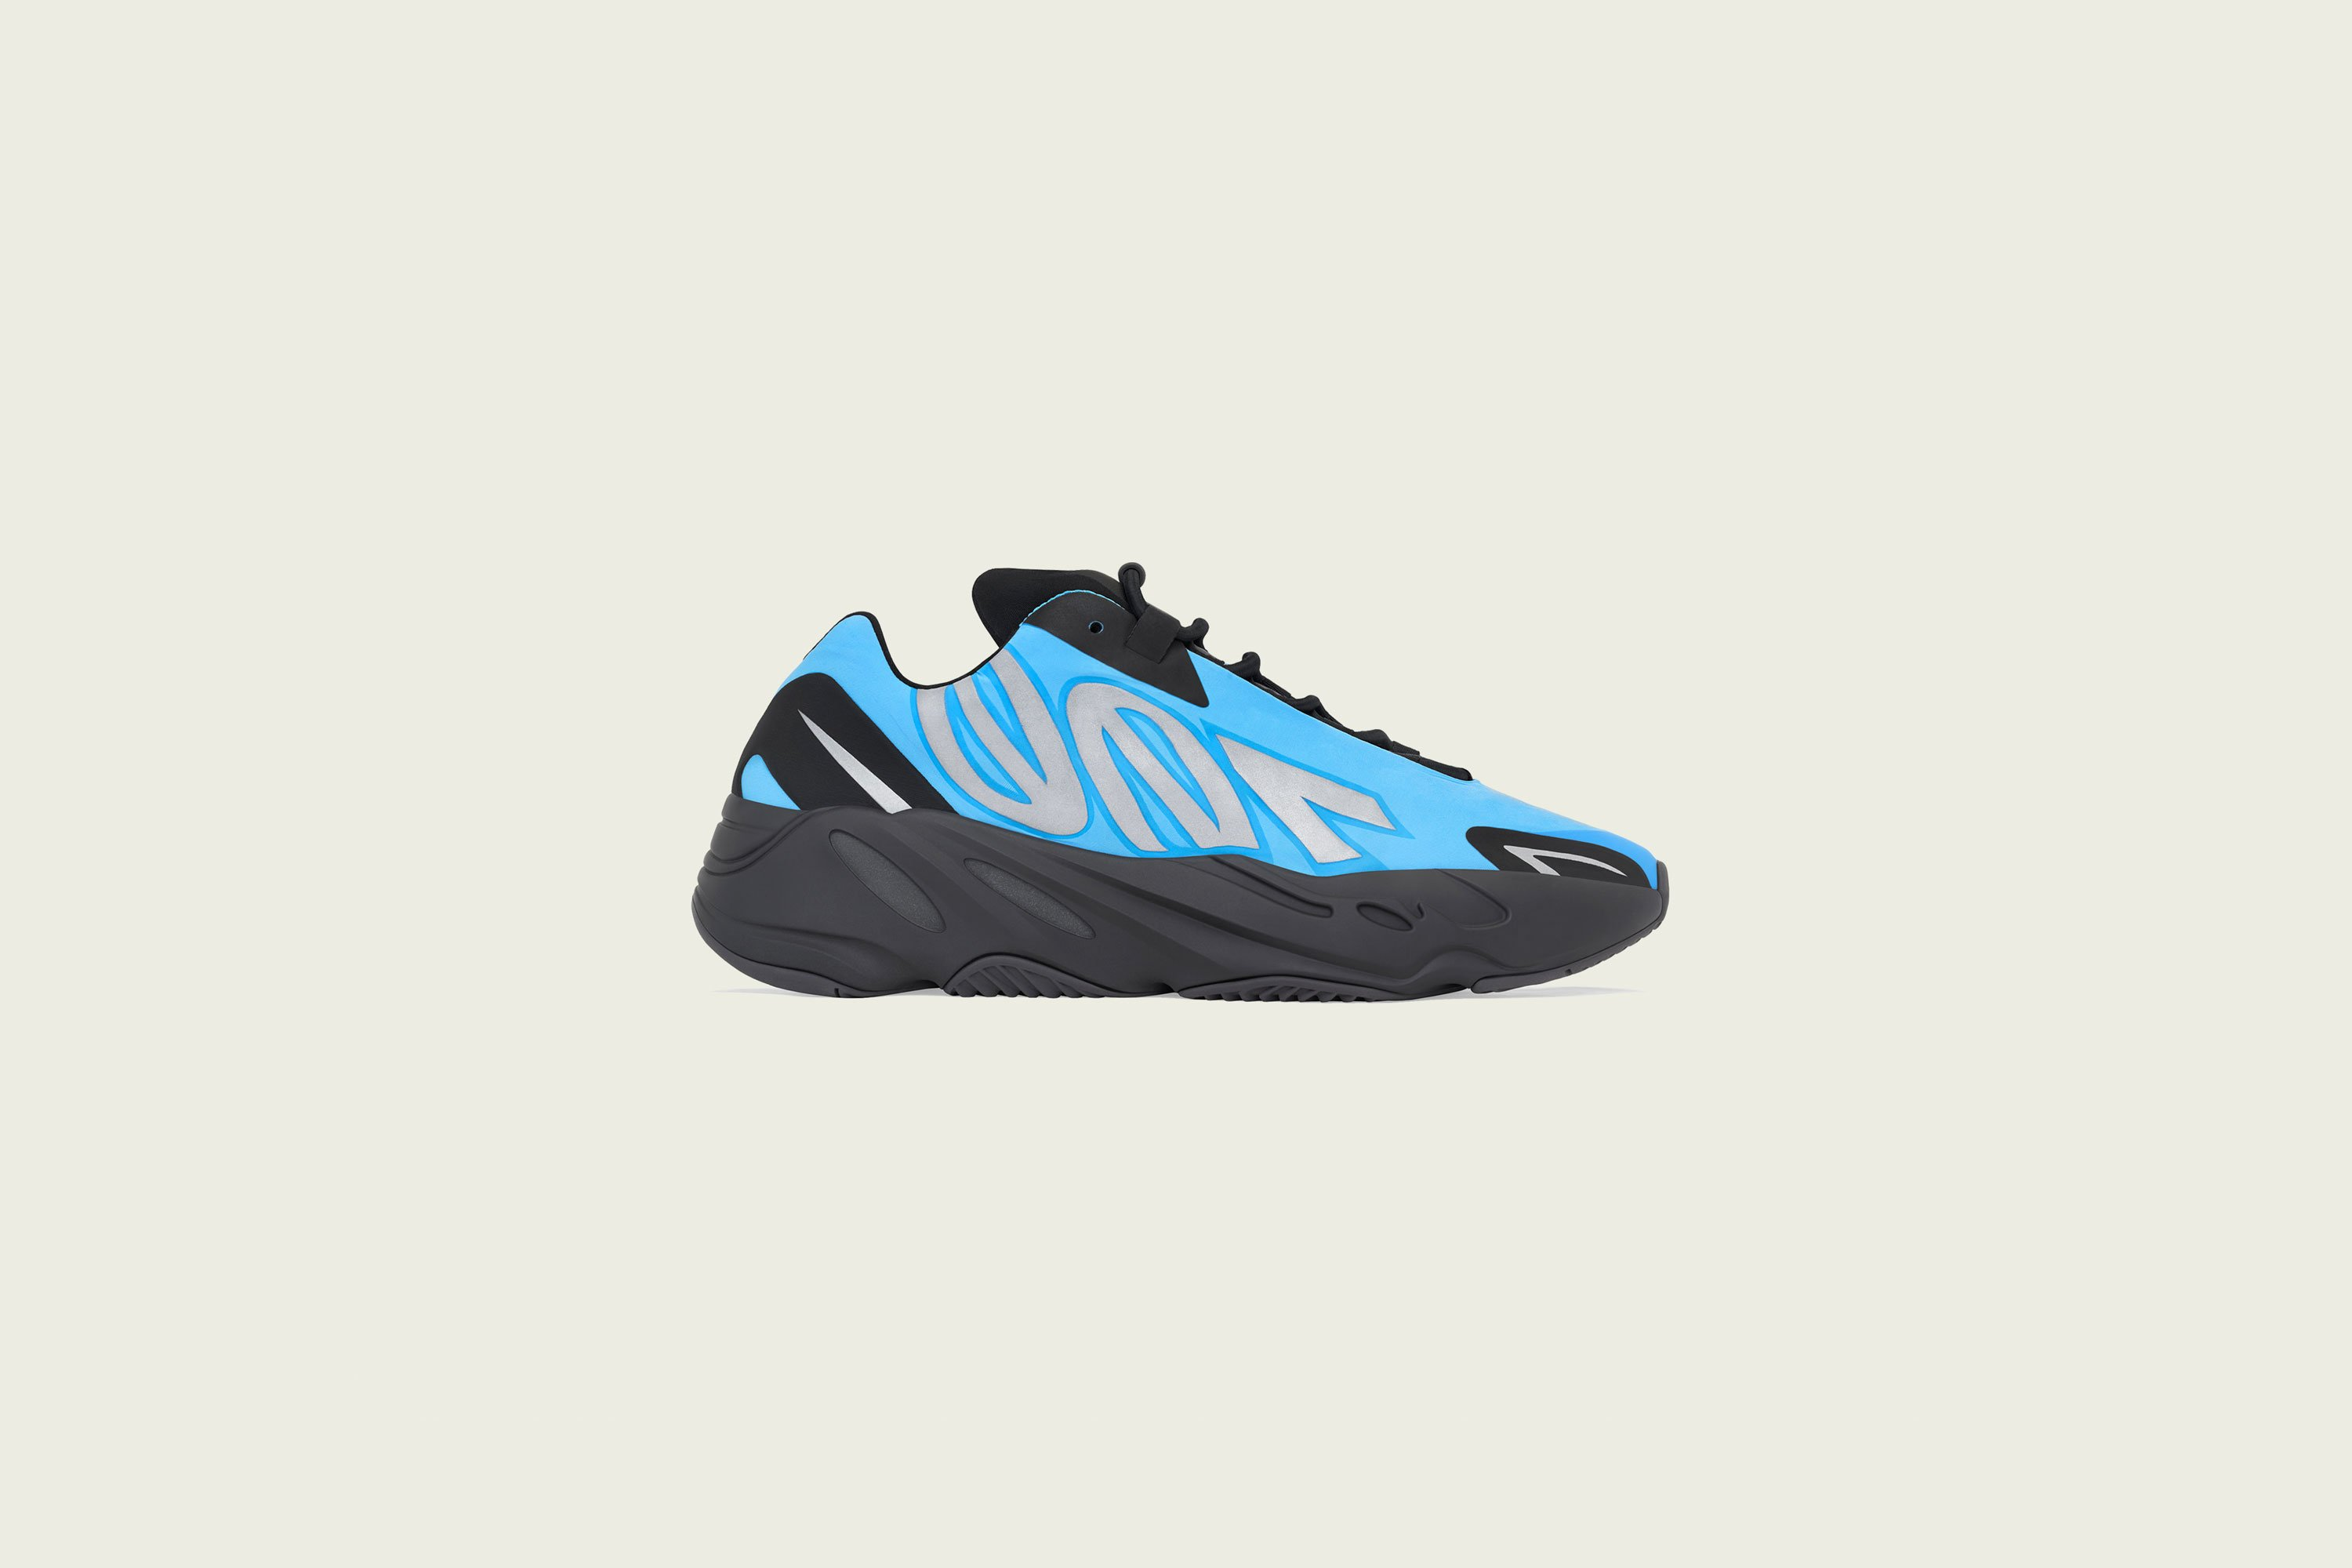 Up There Launches - adidas Originals Yeezy 700 MNVN 'Bright Cyan'